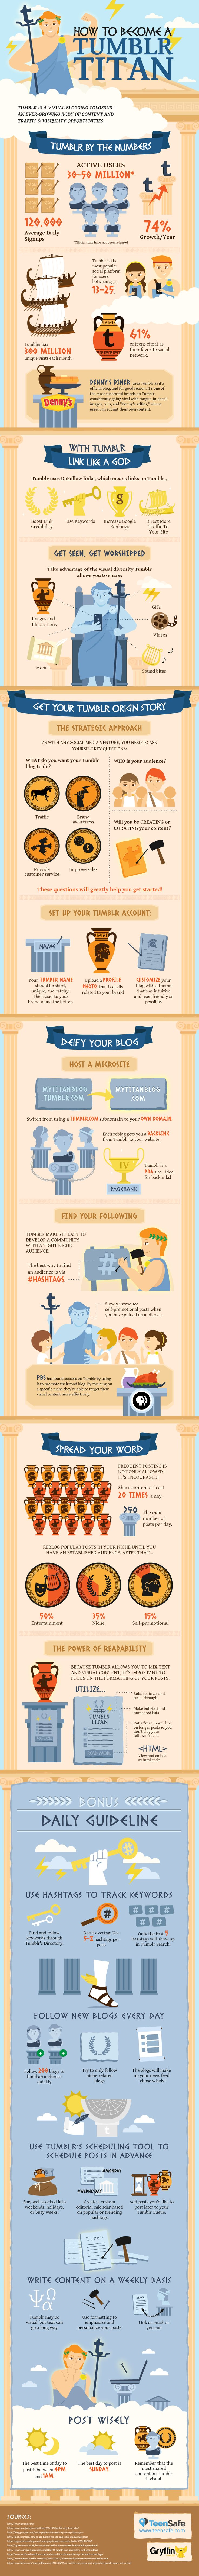 How to use #Tumblr for your business - If you are still unfamiliar with Tumblr and wondering how to get started? Then follow the steps mentioned in the infographic below and you may just become the next great Tumblr Titan!